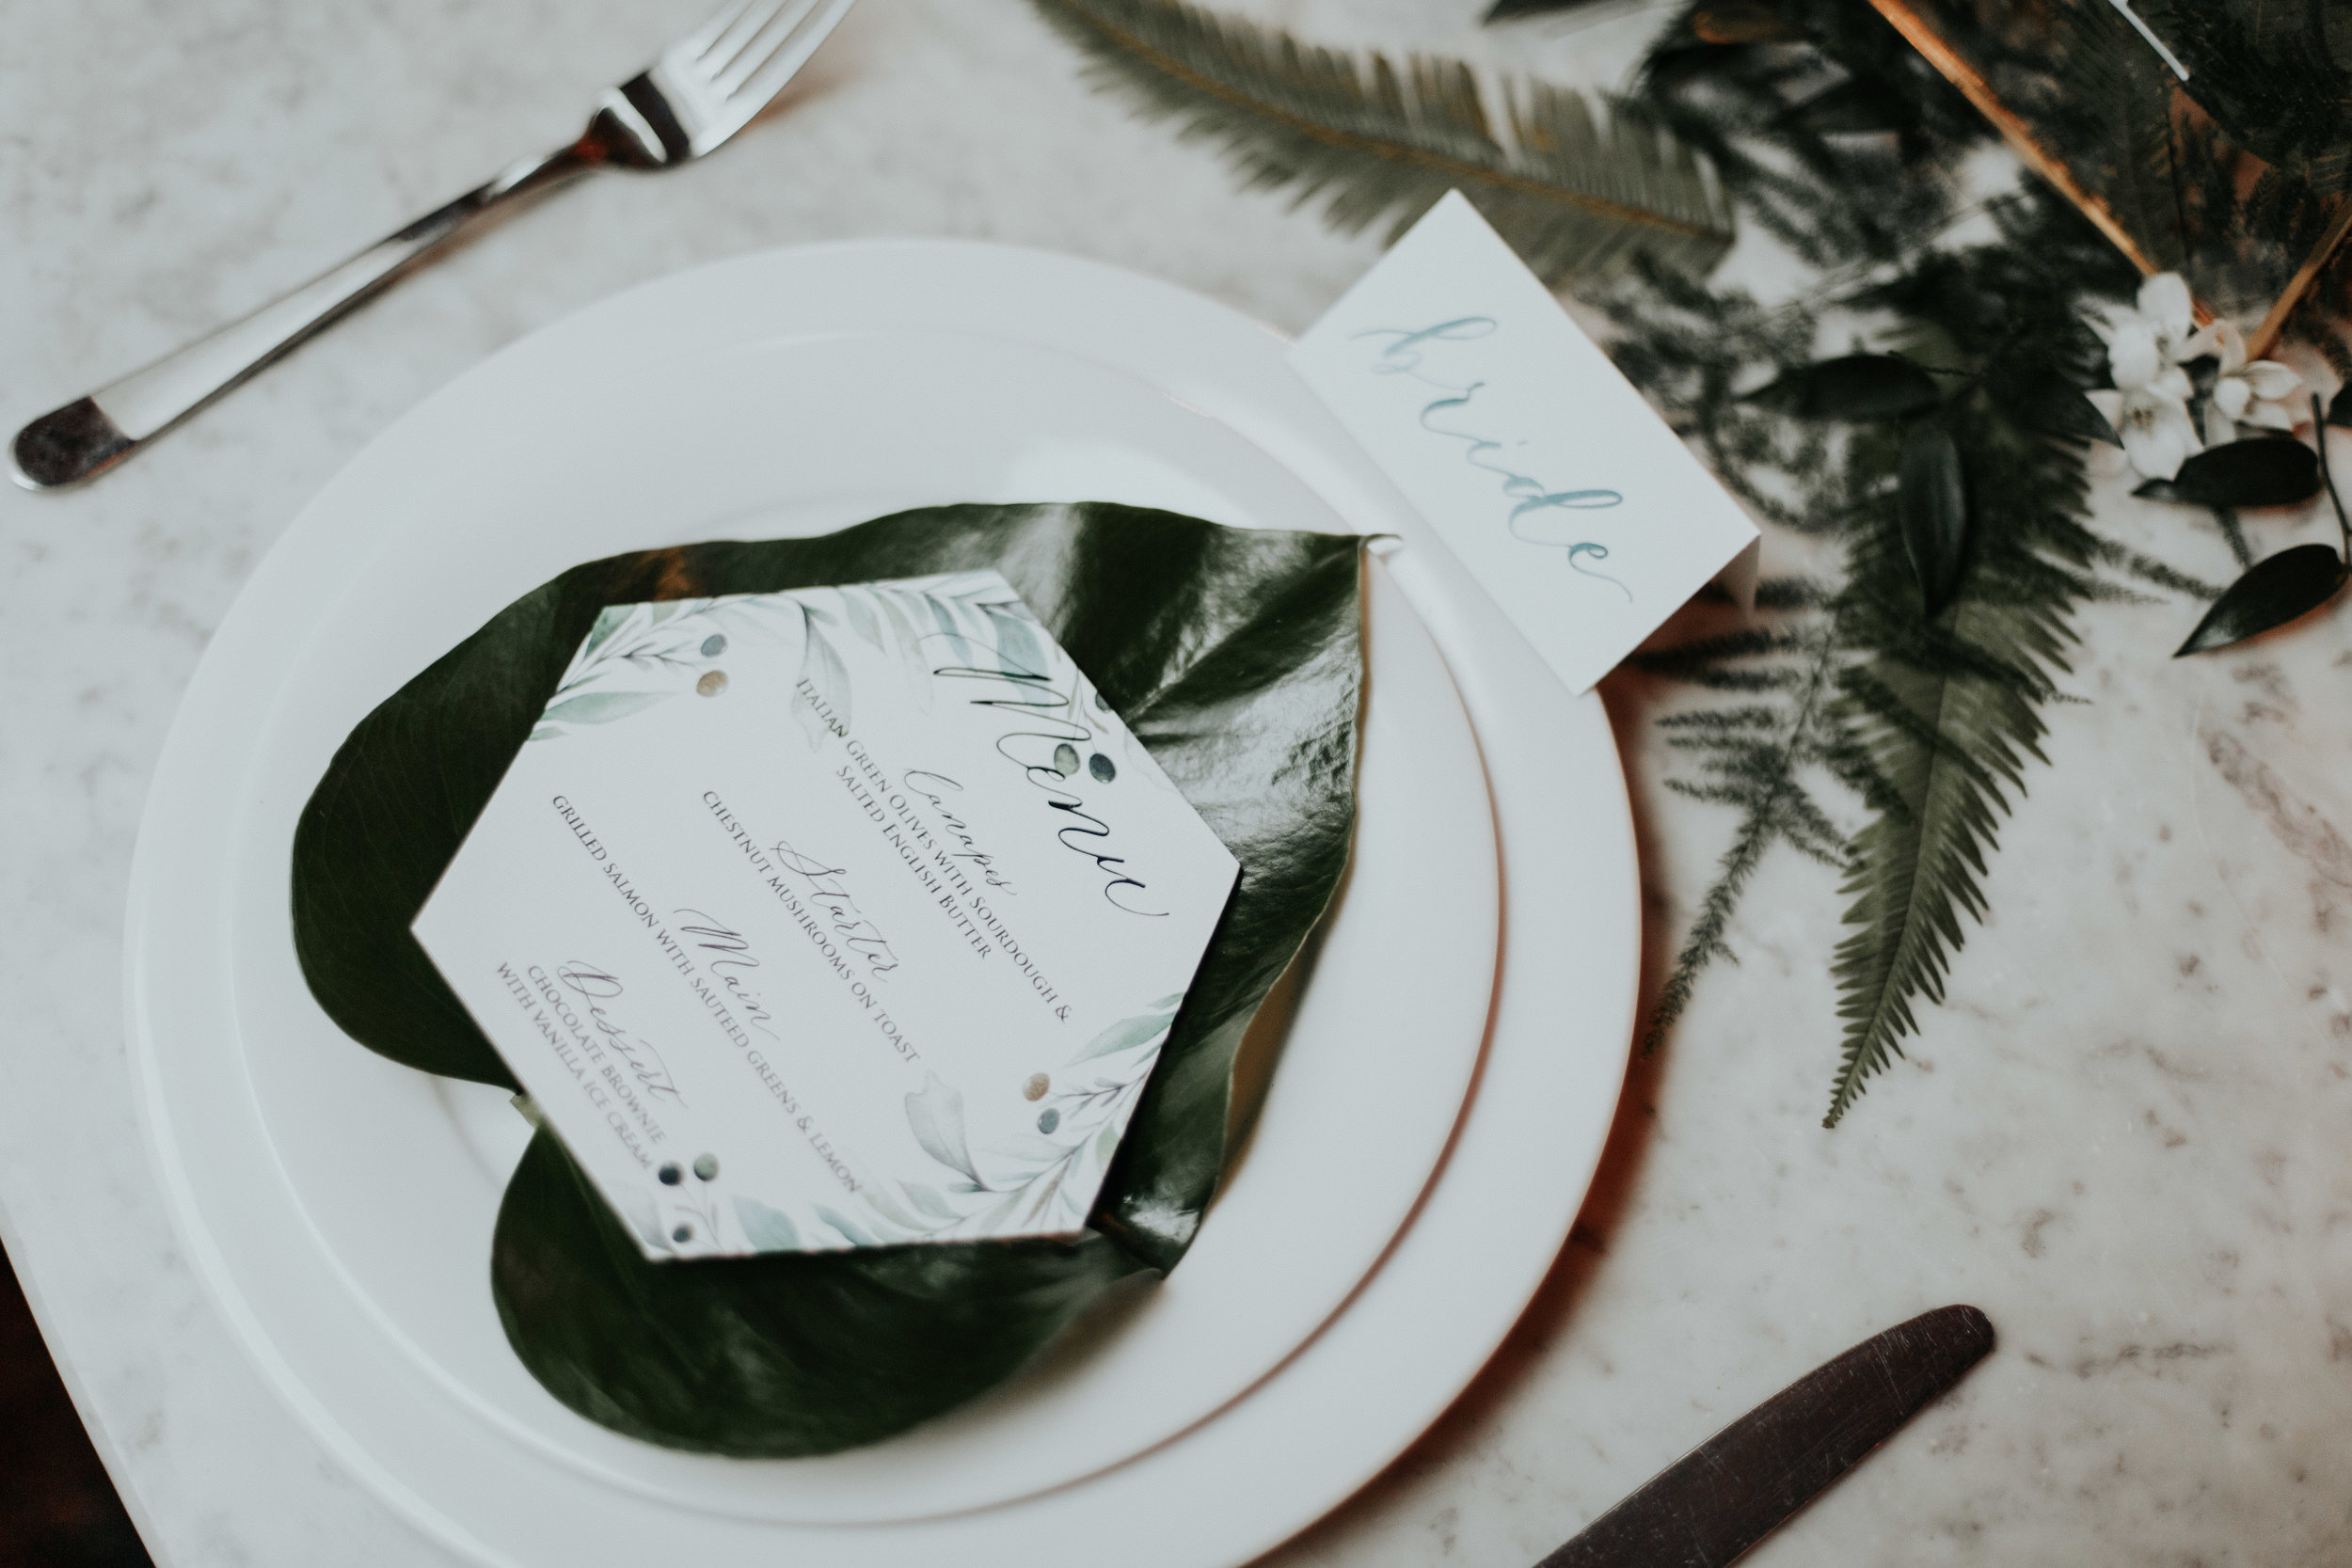 MENU & PLACE CARD